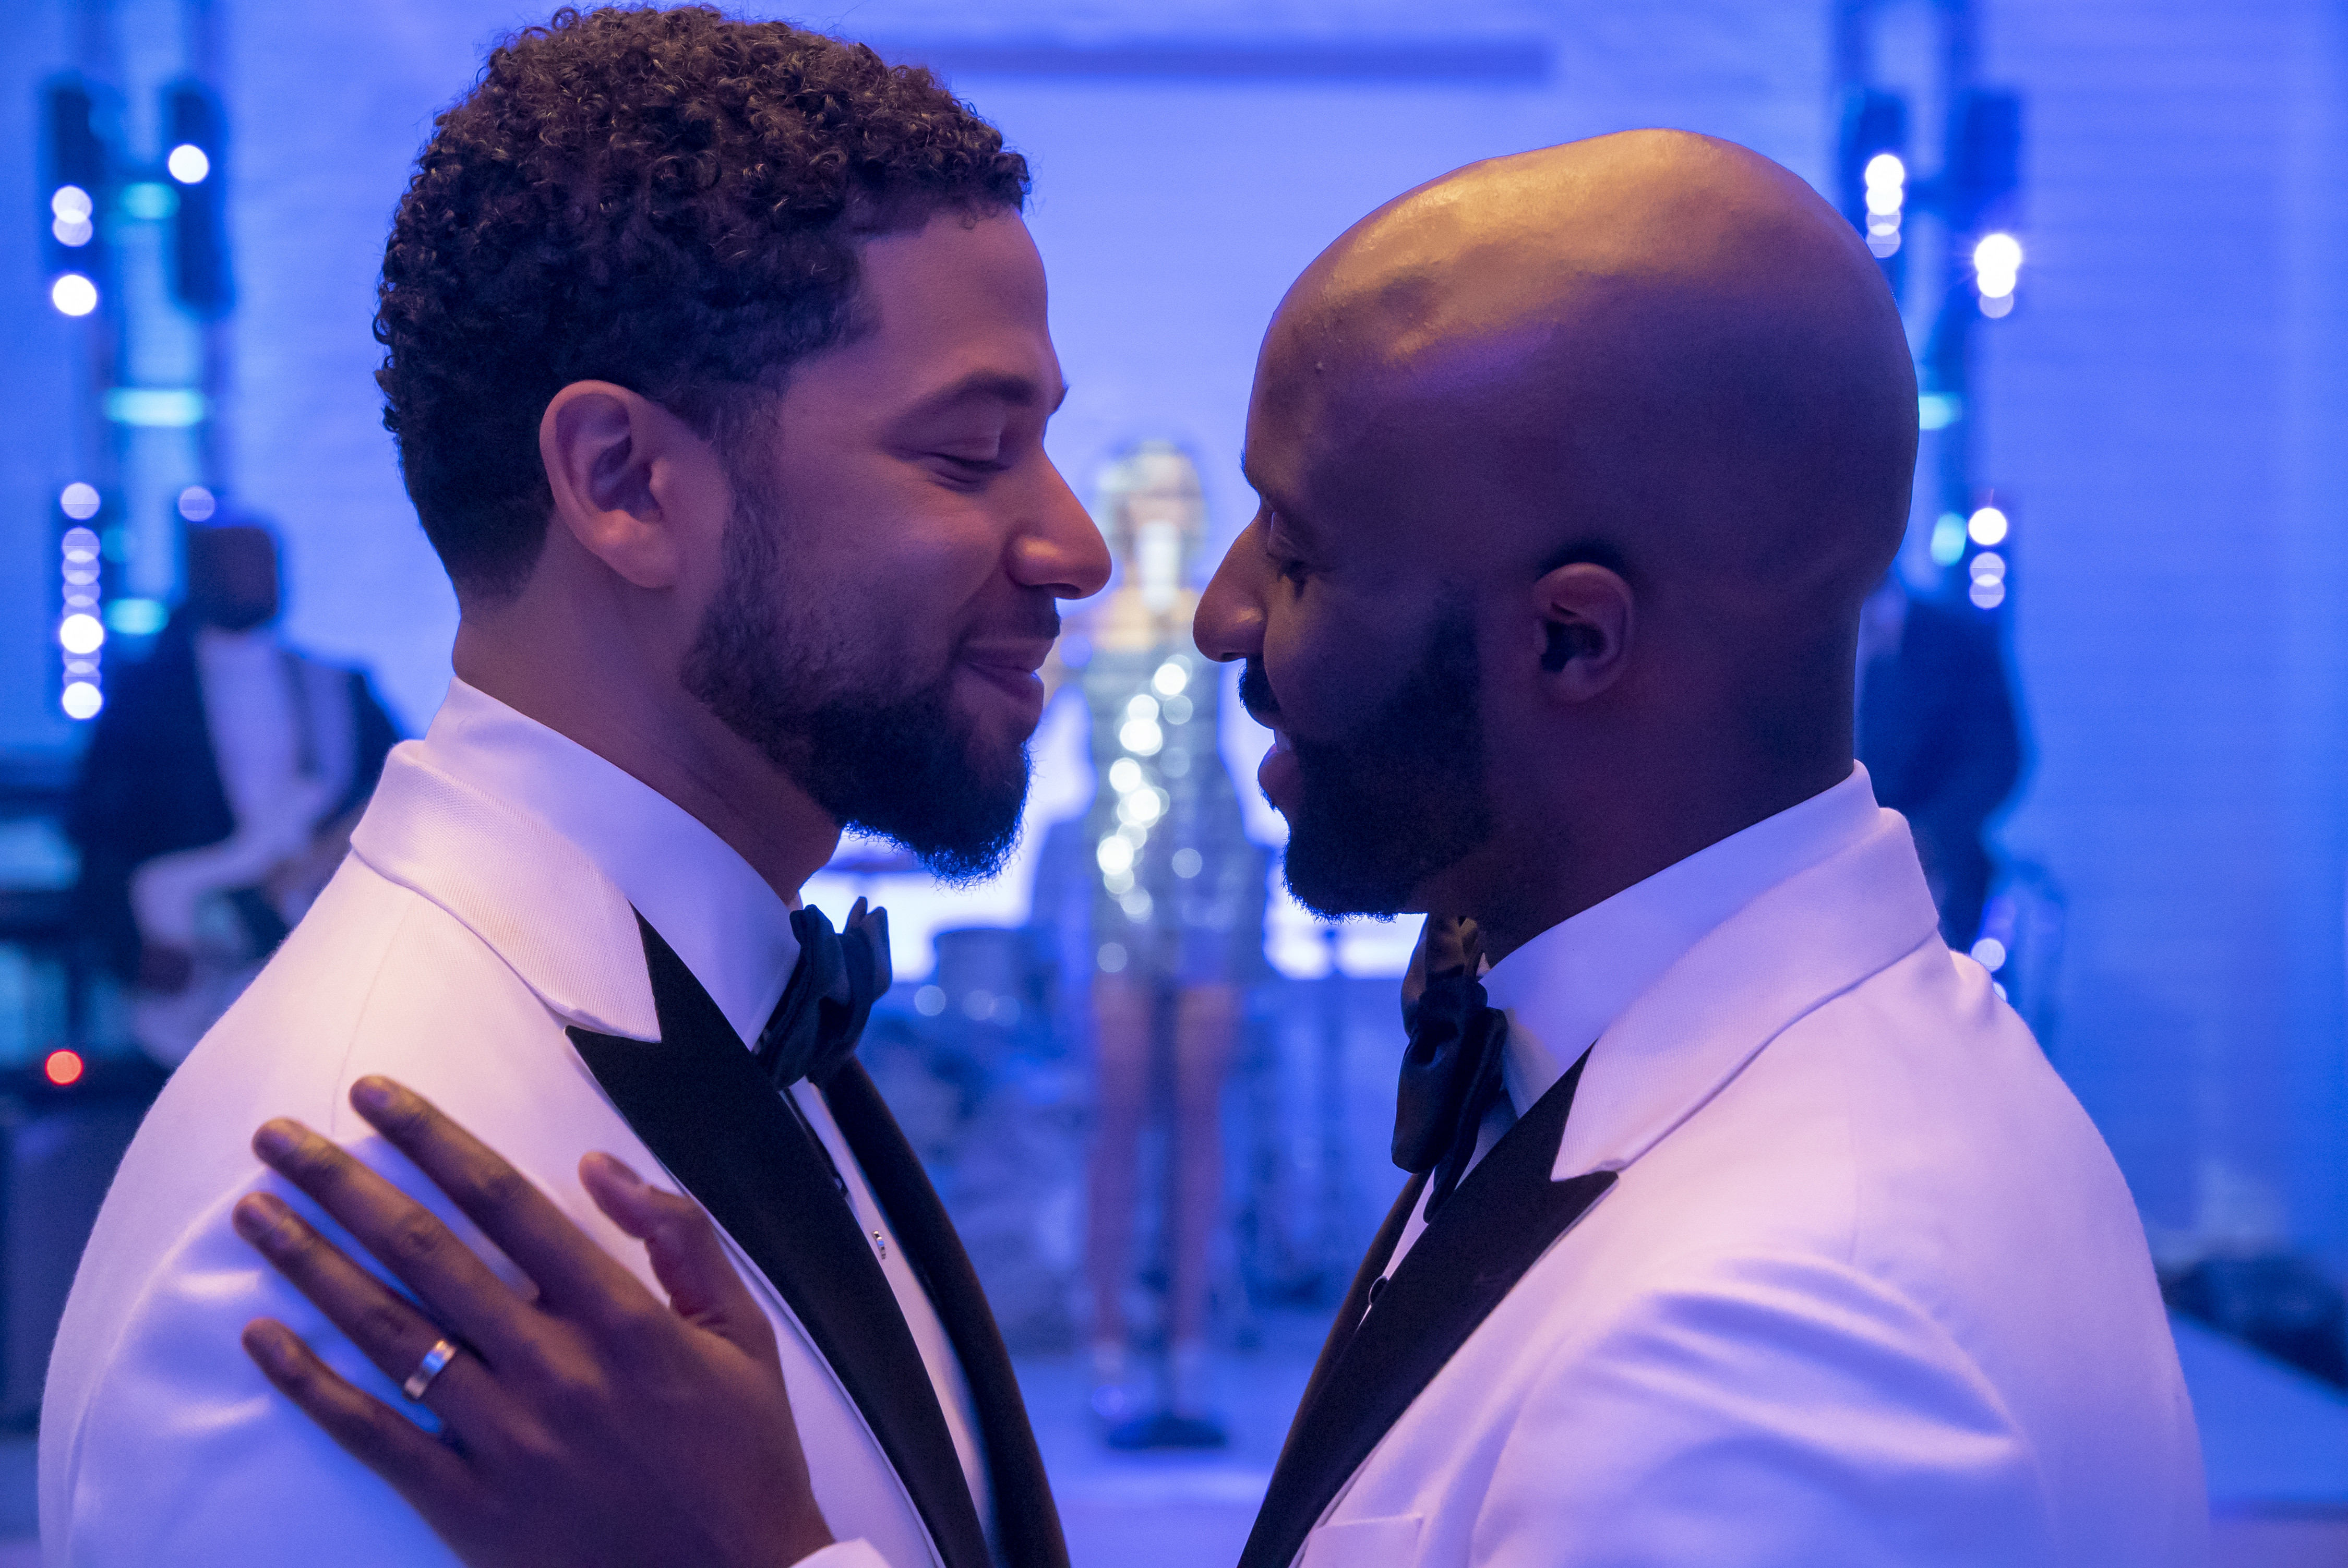 A moving moment in Jussie Smollett's troubled year